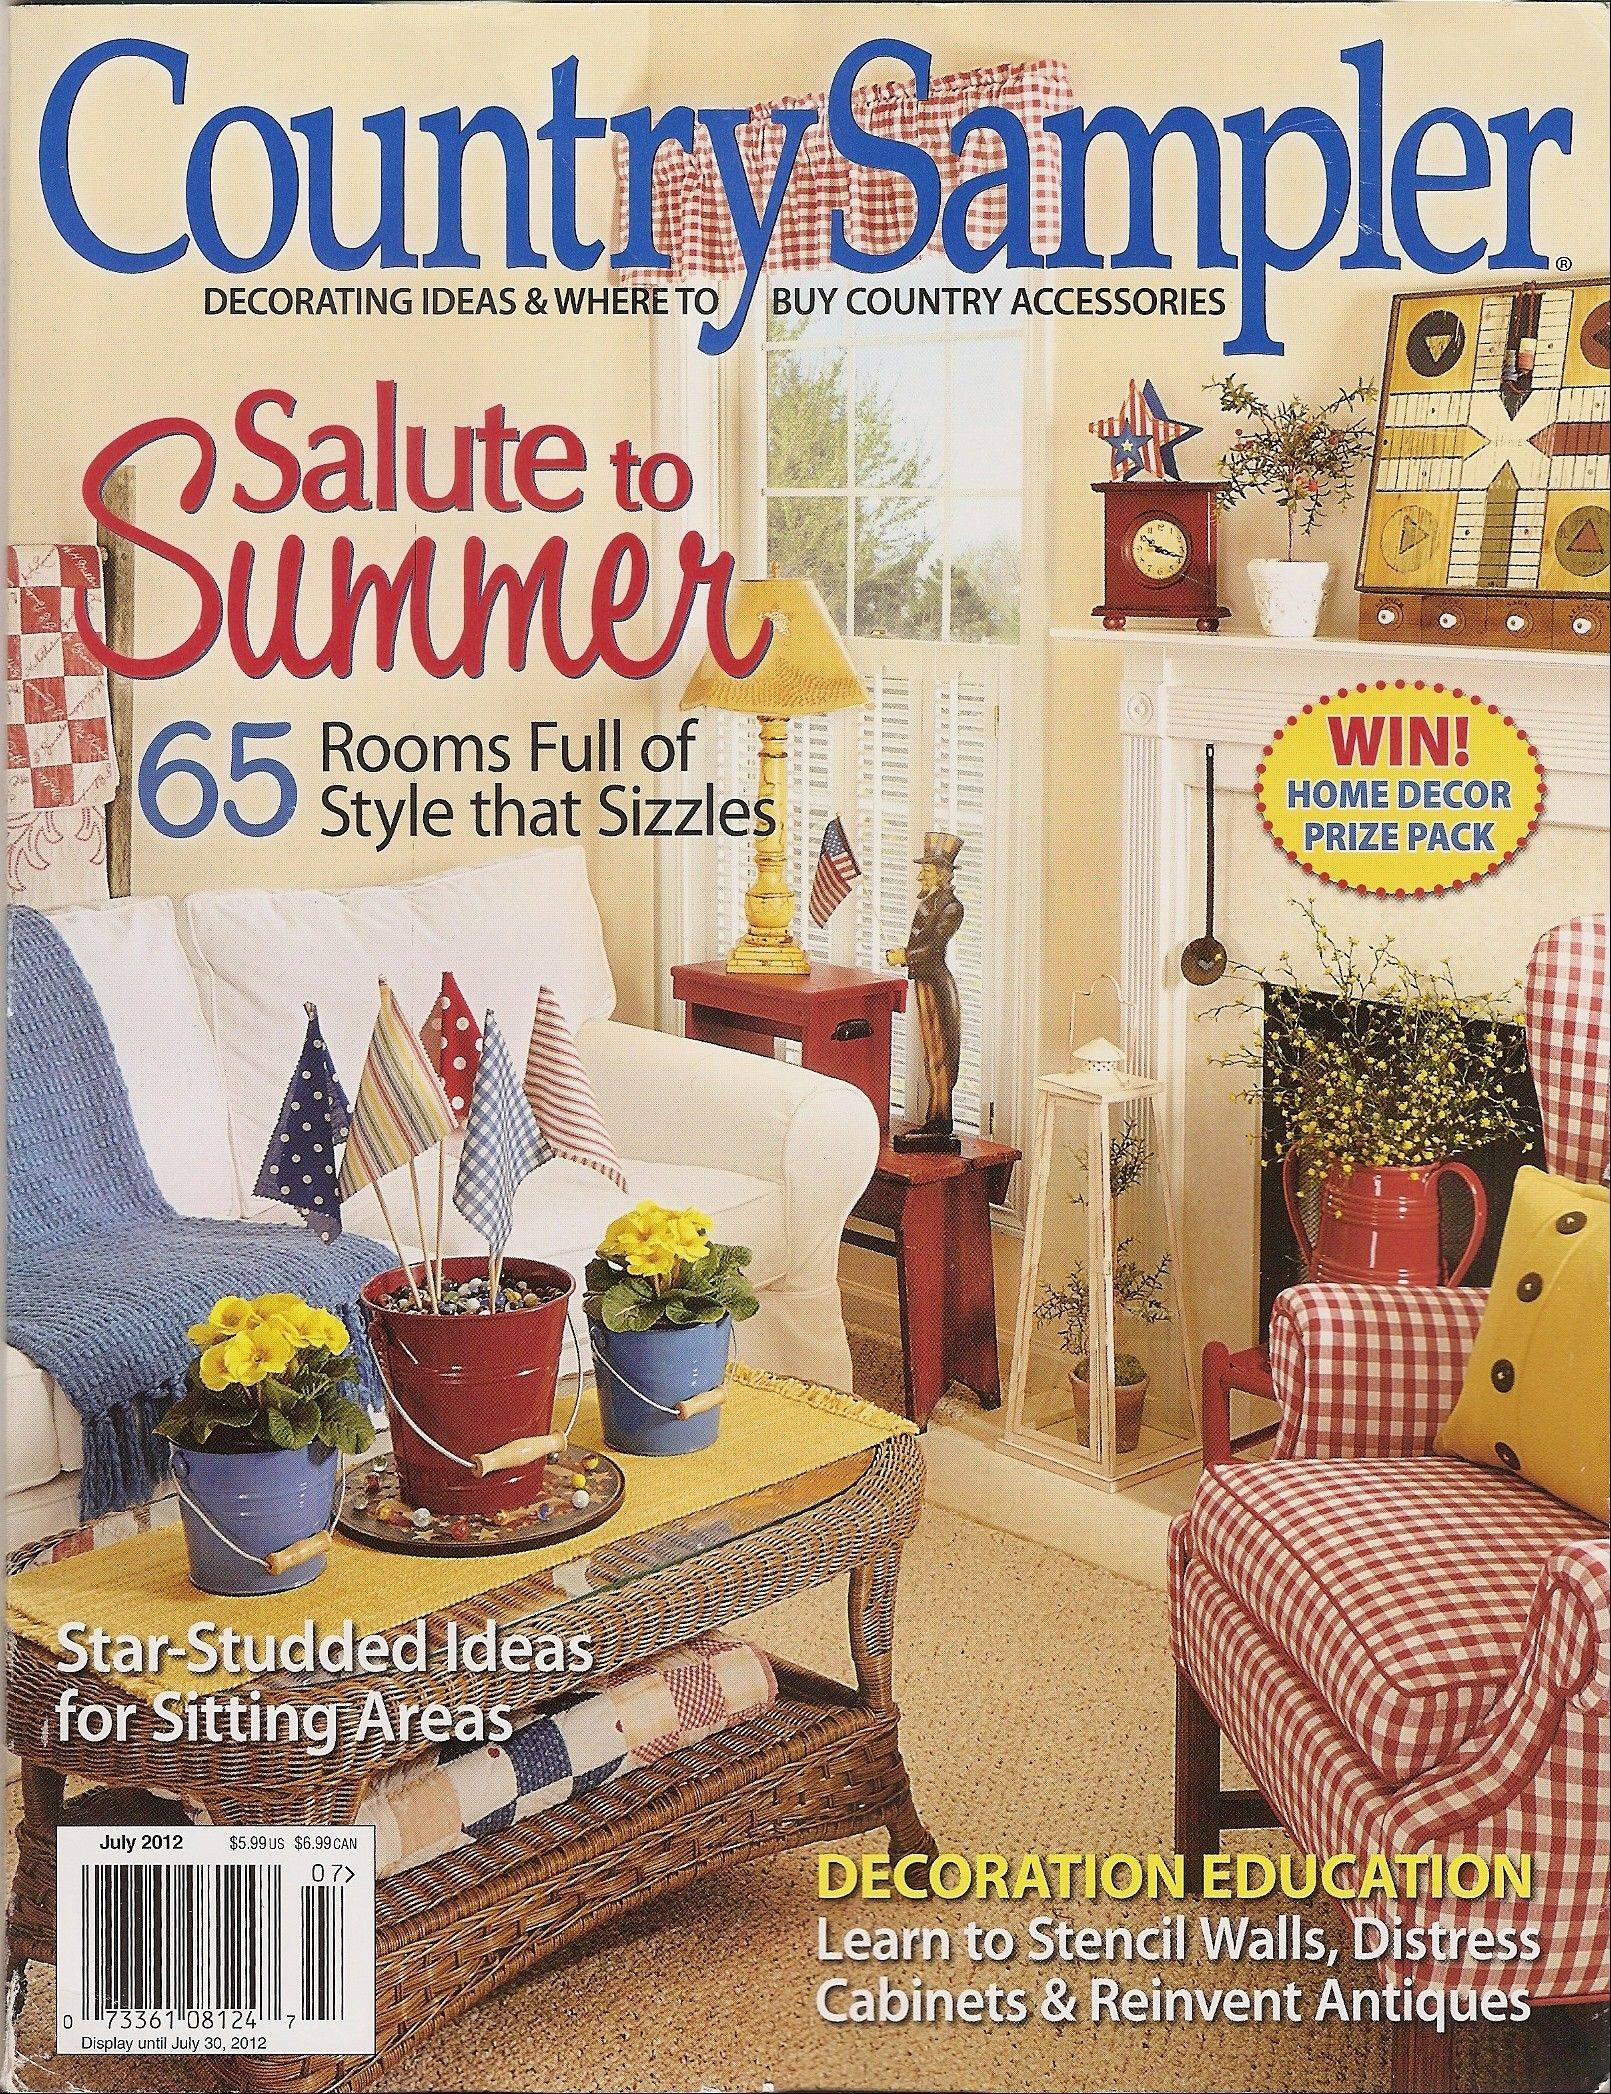 Country Sampler's July issue.